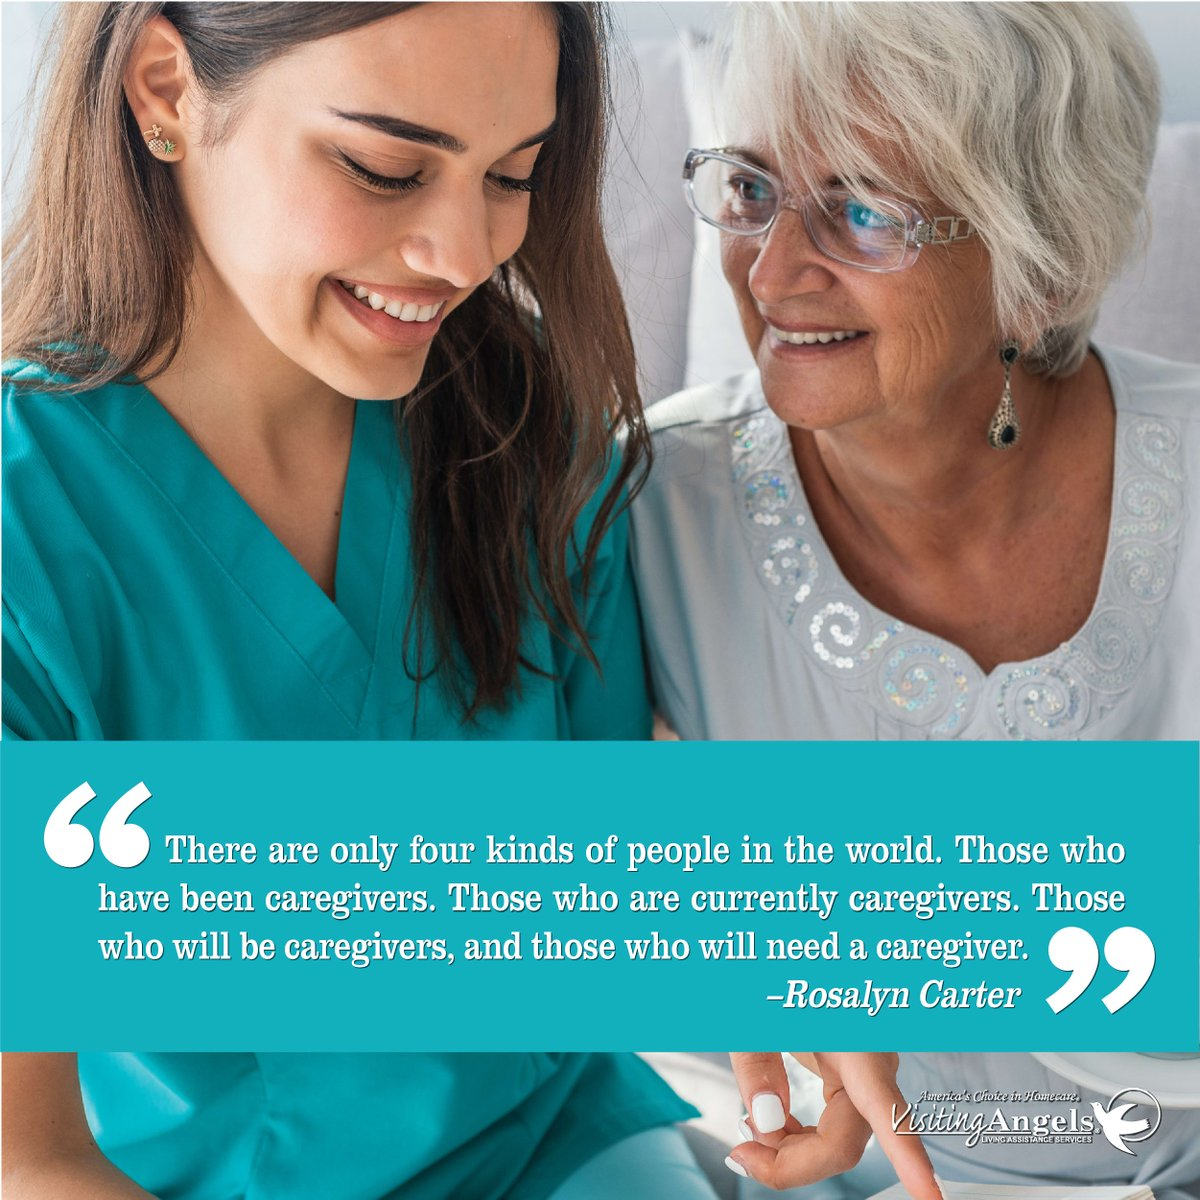 Shout out to all #Caregivers - family and professional! You have a special heart for caring for others and we appreciate you!    #mondayquotes #caringquotes #seniorcare #aginginplace #caringcareers #elderlycare #homecare<br>http://pic.twitter.com/lEXmooyMmz